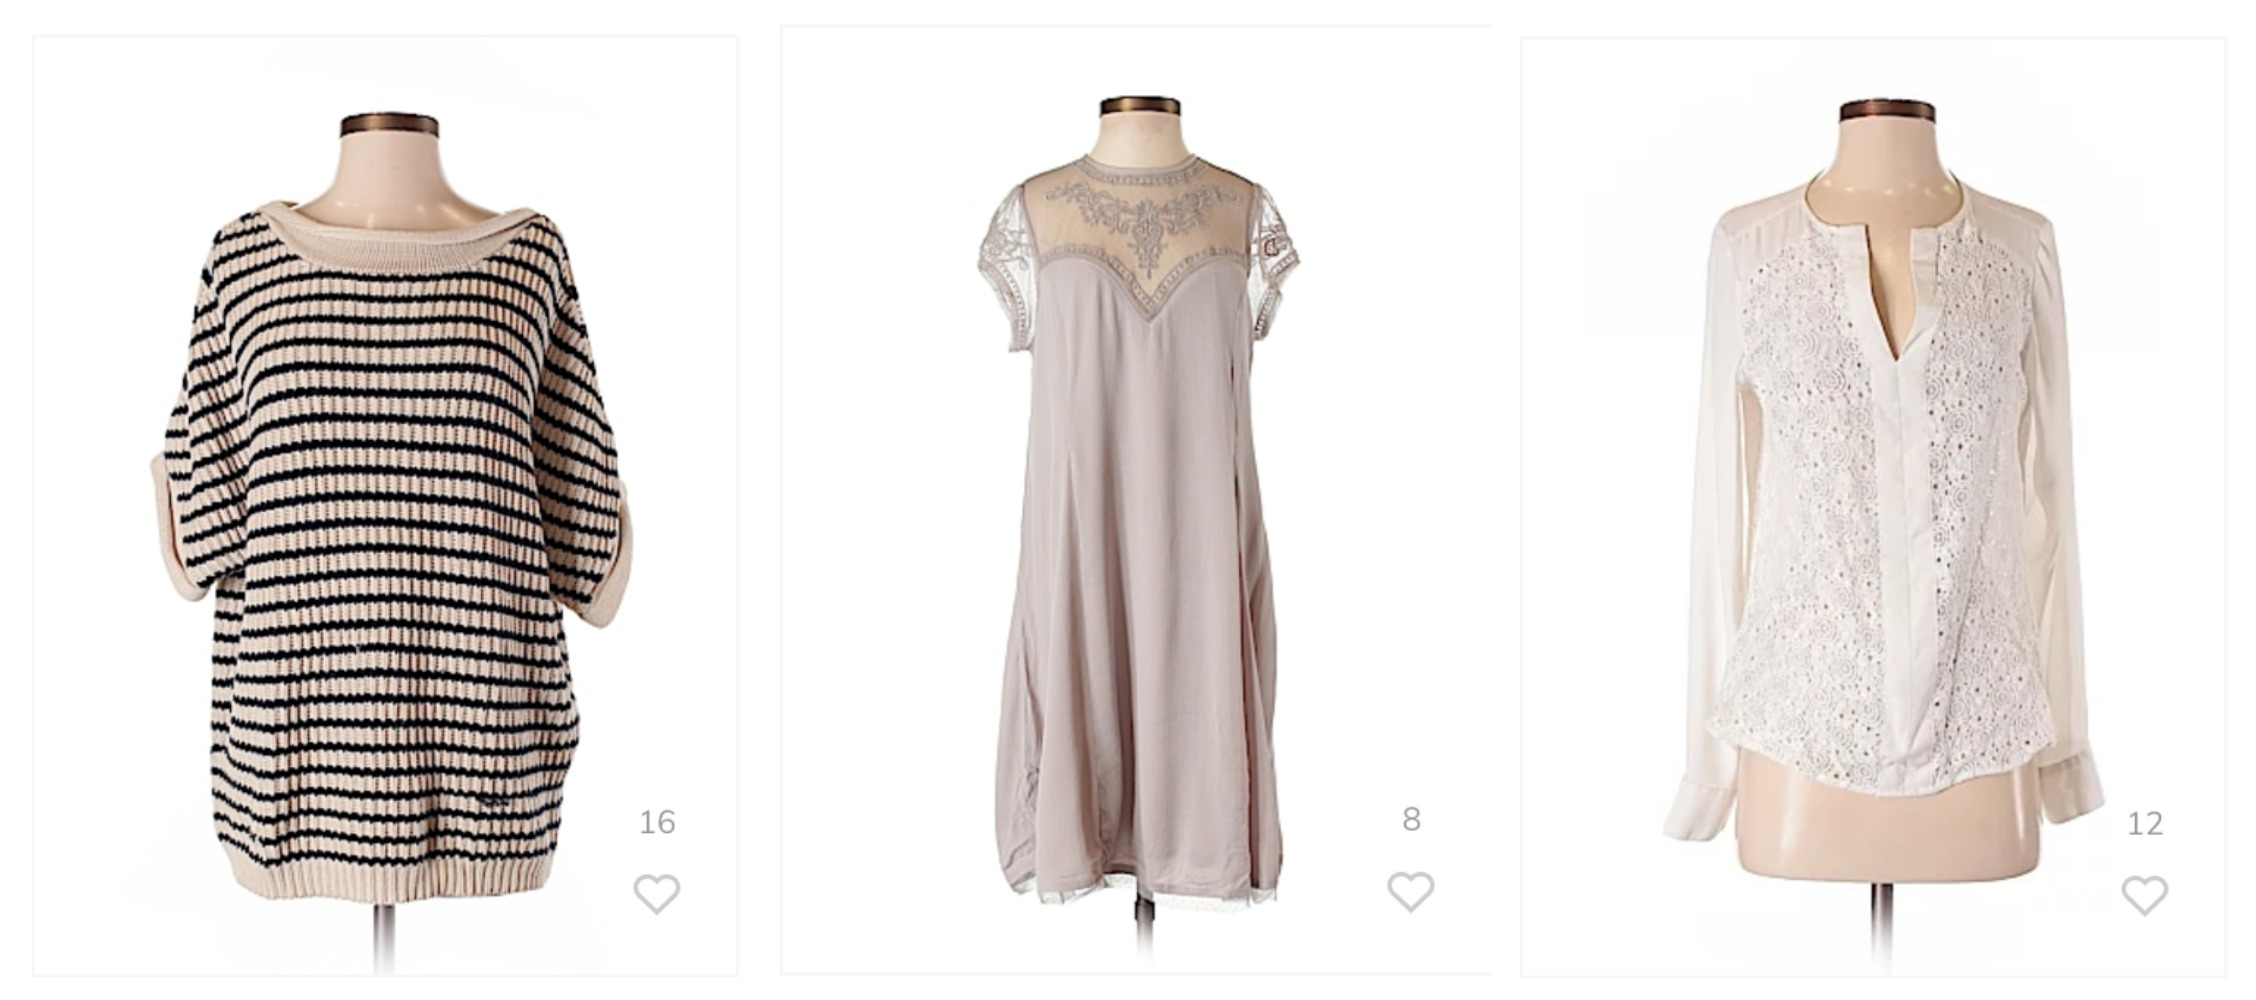 Where to by inexpensive clothing online